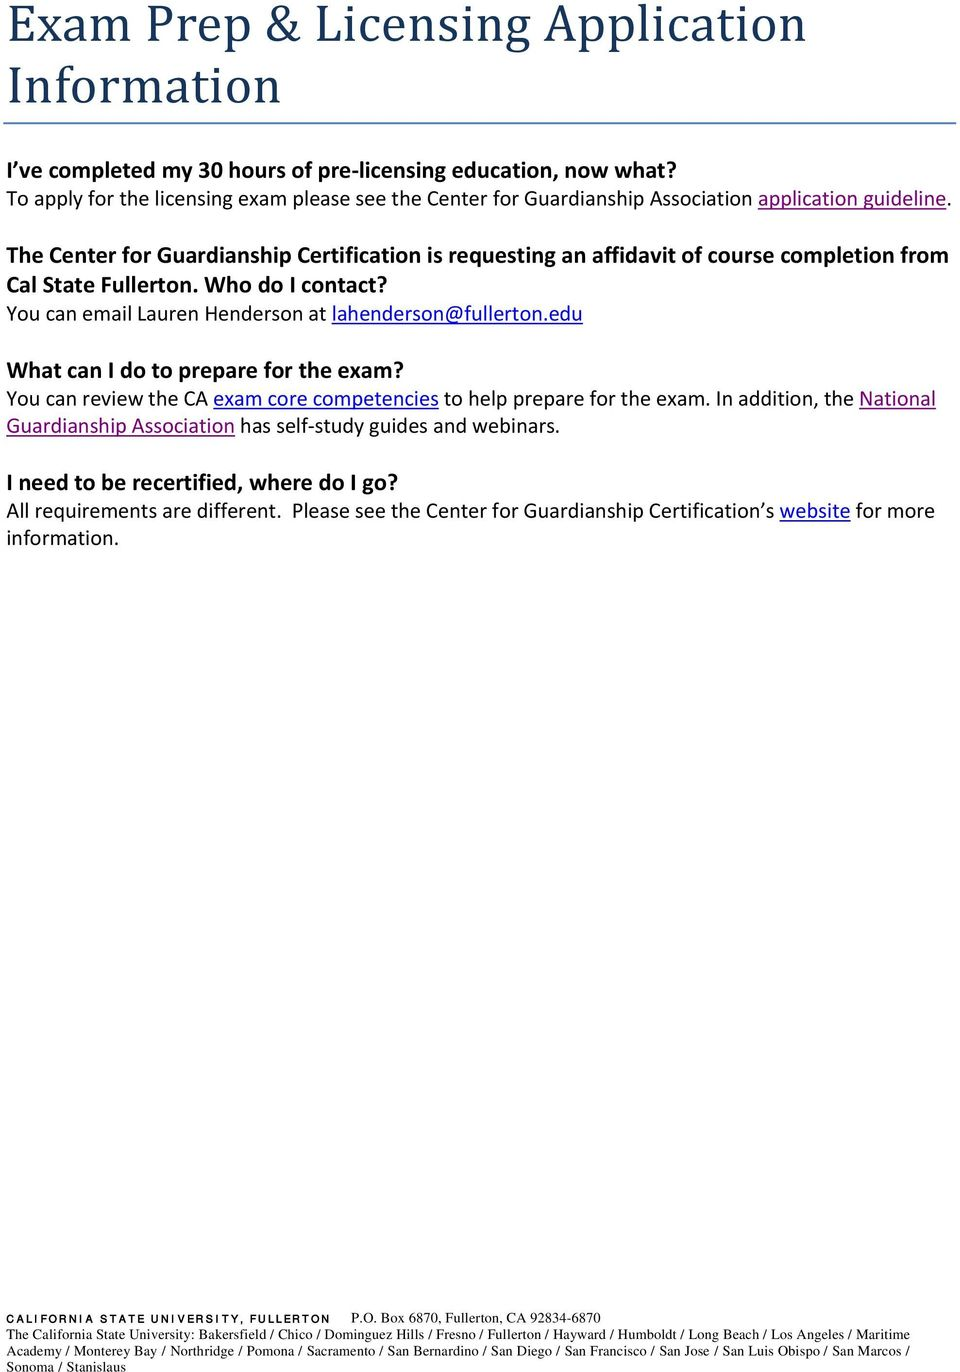 The Center for Guardianship Certification is requesting an affidavit of course completion from Cal State Fullerton. Who do I contact? You can email Lauren Henderson at lahenderson@fullerton.